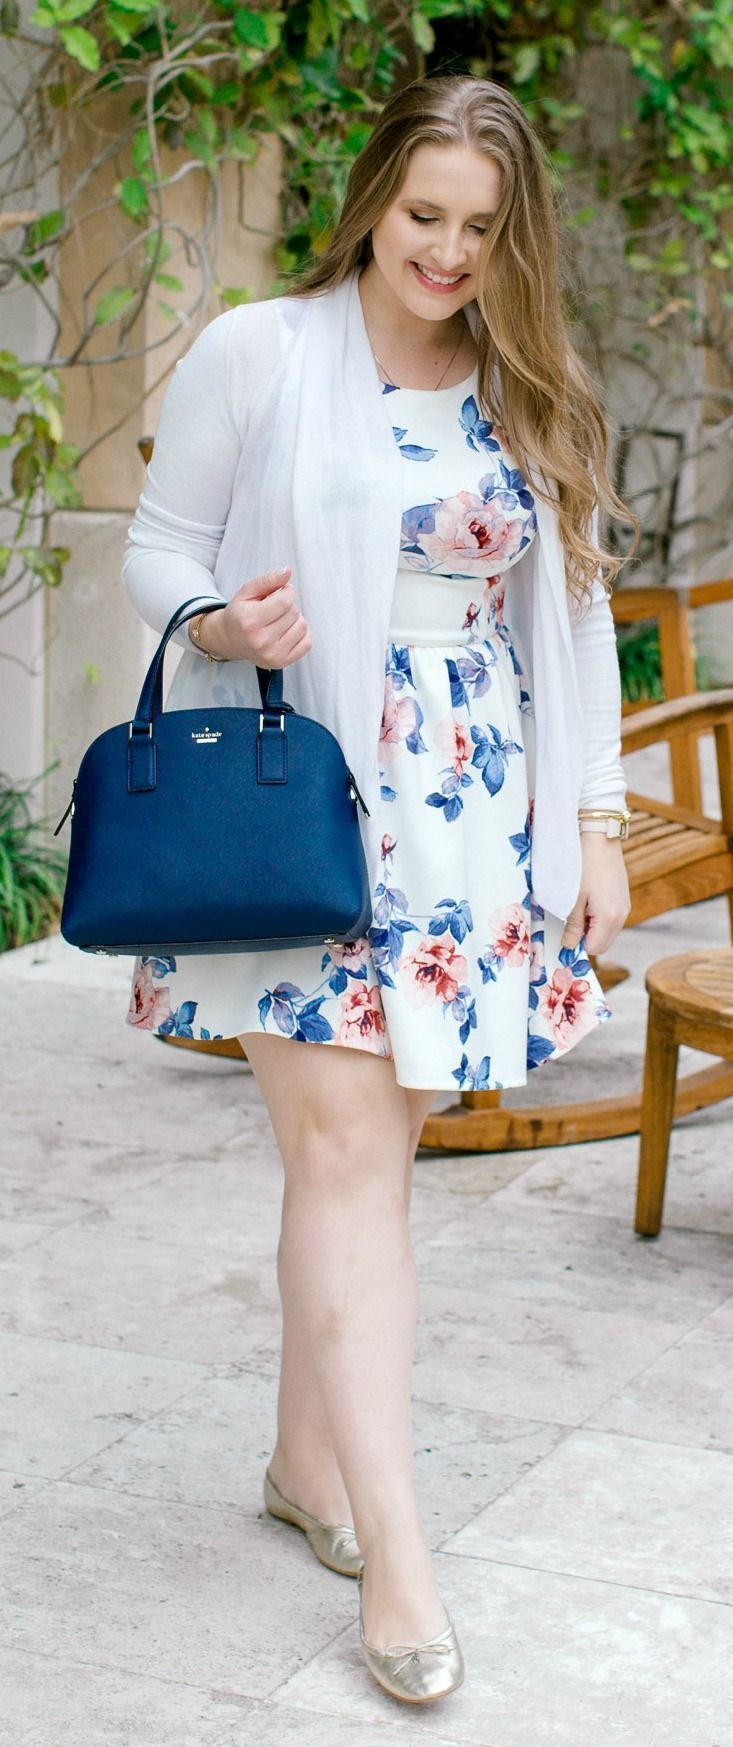 The Best Of Kate Spade Beautiful Clothing Pinterest Pee Outfits Cameron Street And Florida Fashion